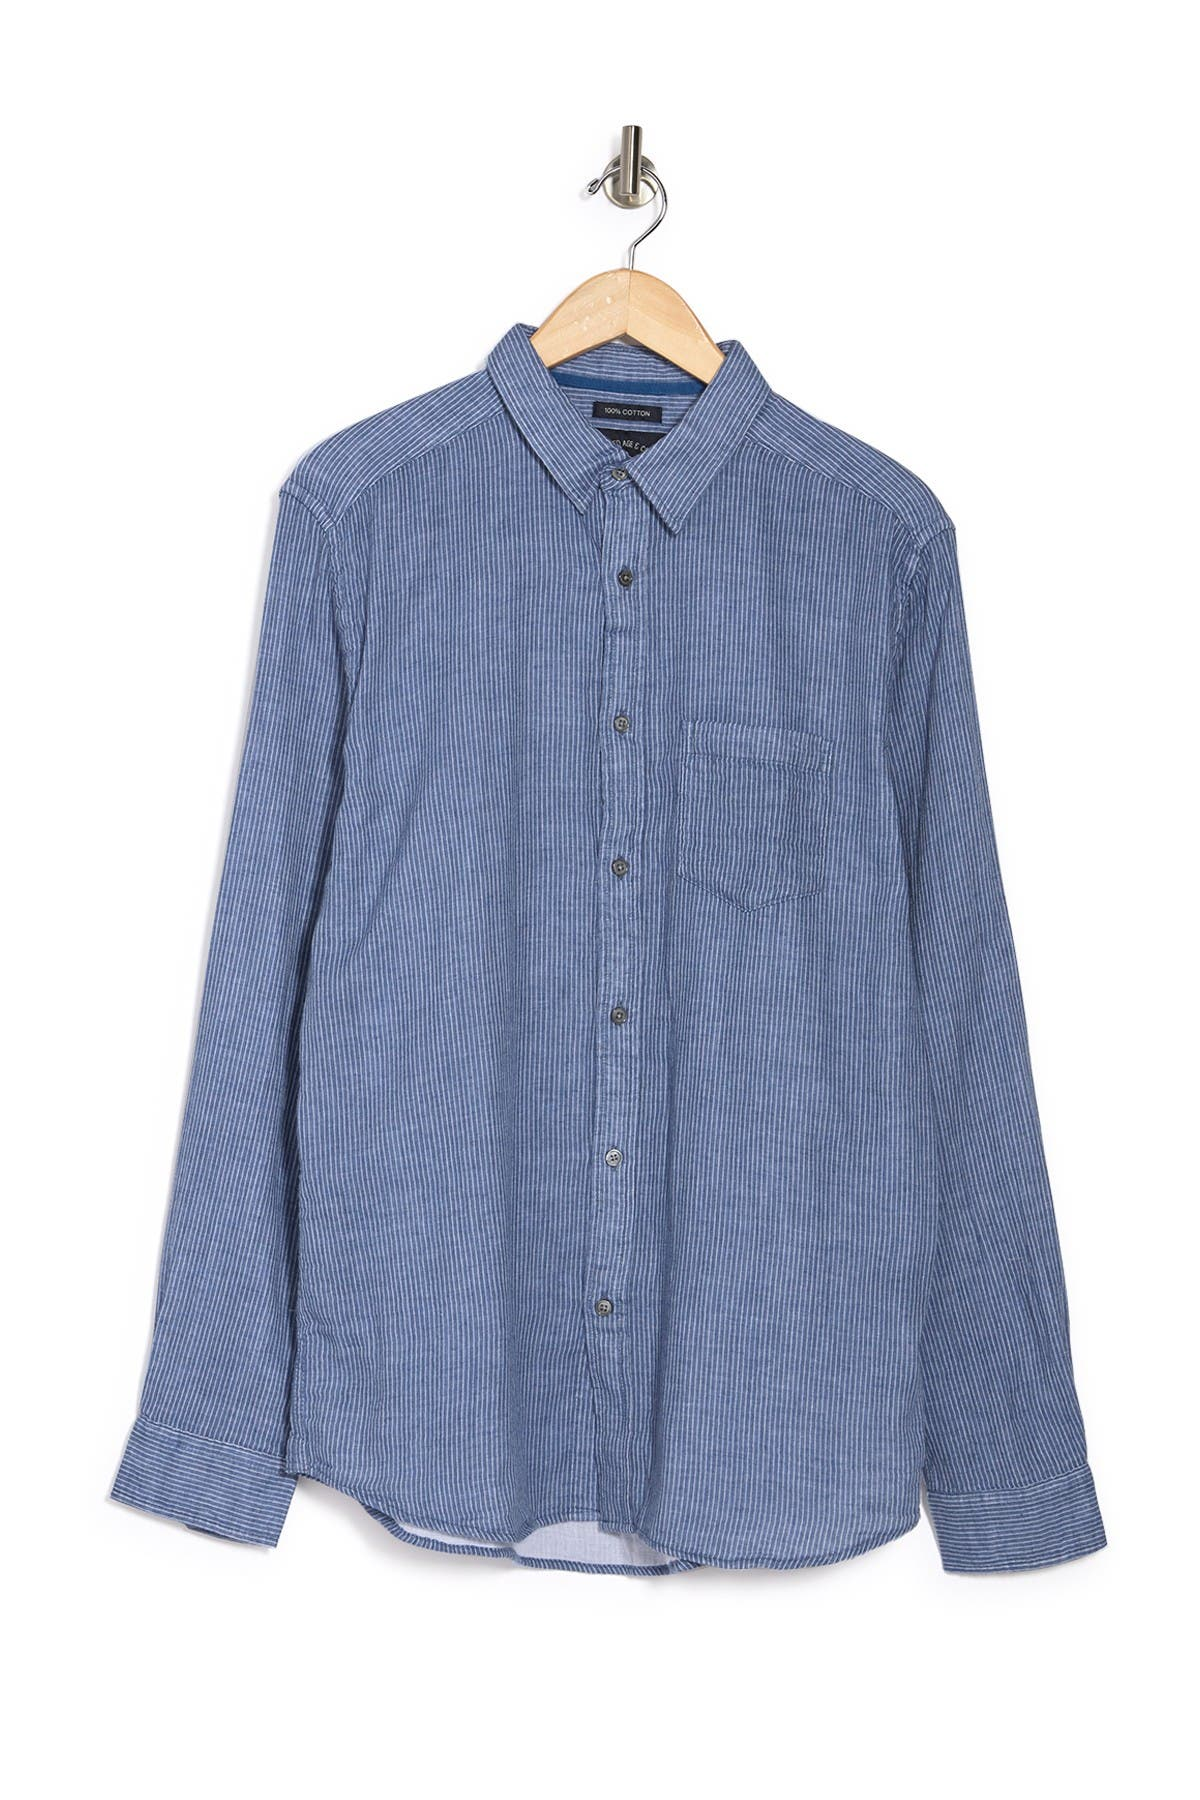 Image of Gilded Age Gild Classic Fit Shirt